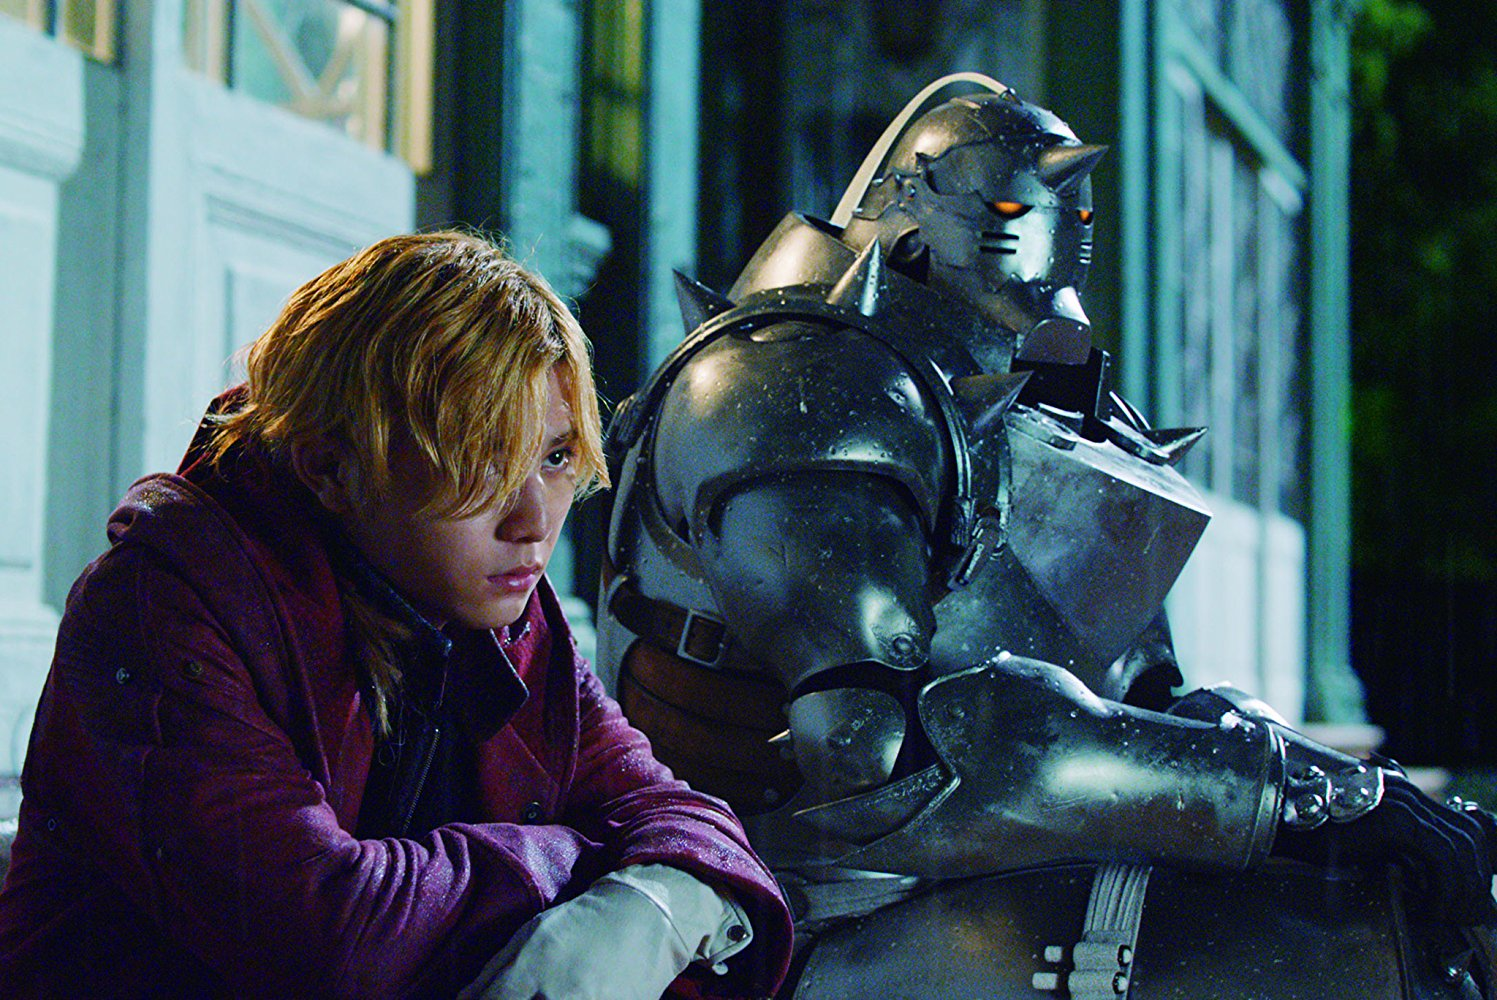 Fullmetal Alchemist Photo Credit: IMDb / Amazon